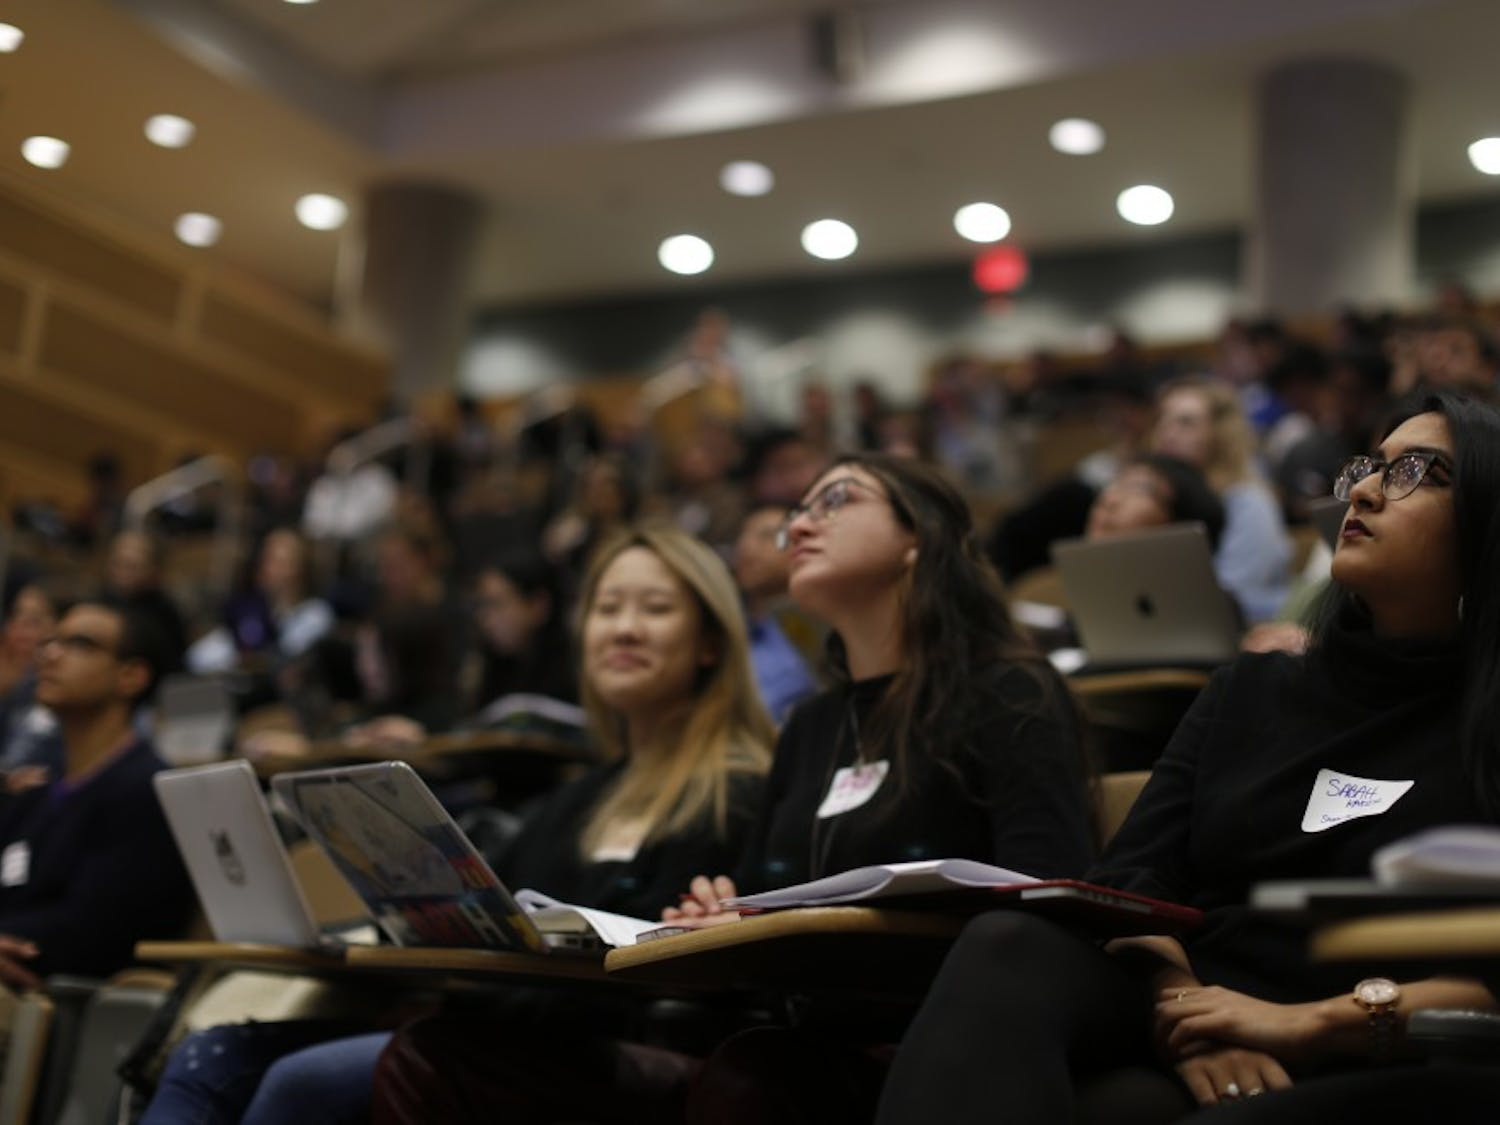 Sabah Kadir (right) looks on to Phaedra Boinodiris' keynote lecture on the future of artificial intelligence in UNC's Makathon on Sunday, Feb. 10, 2019 in Murray Hall.